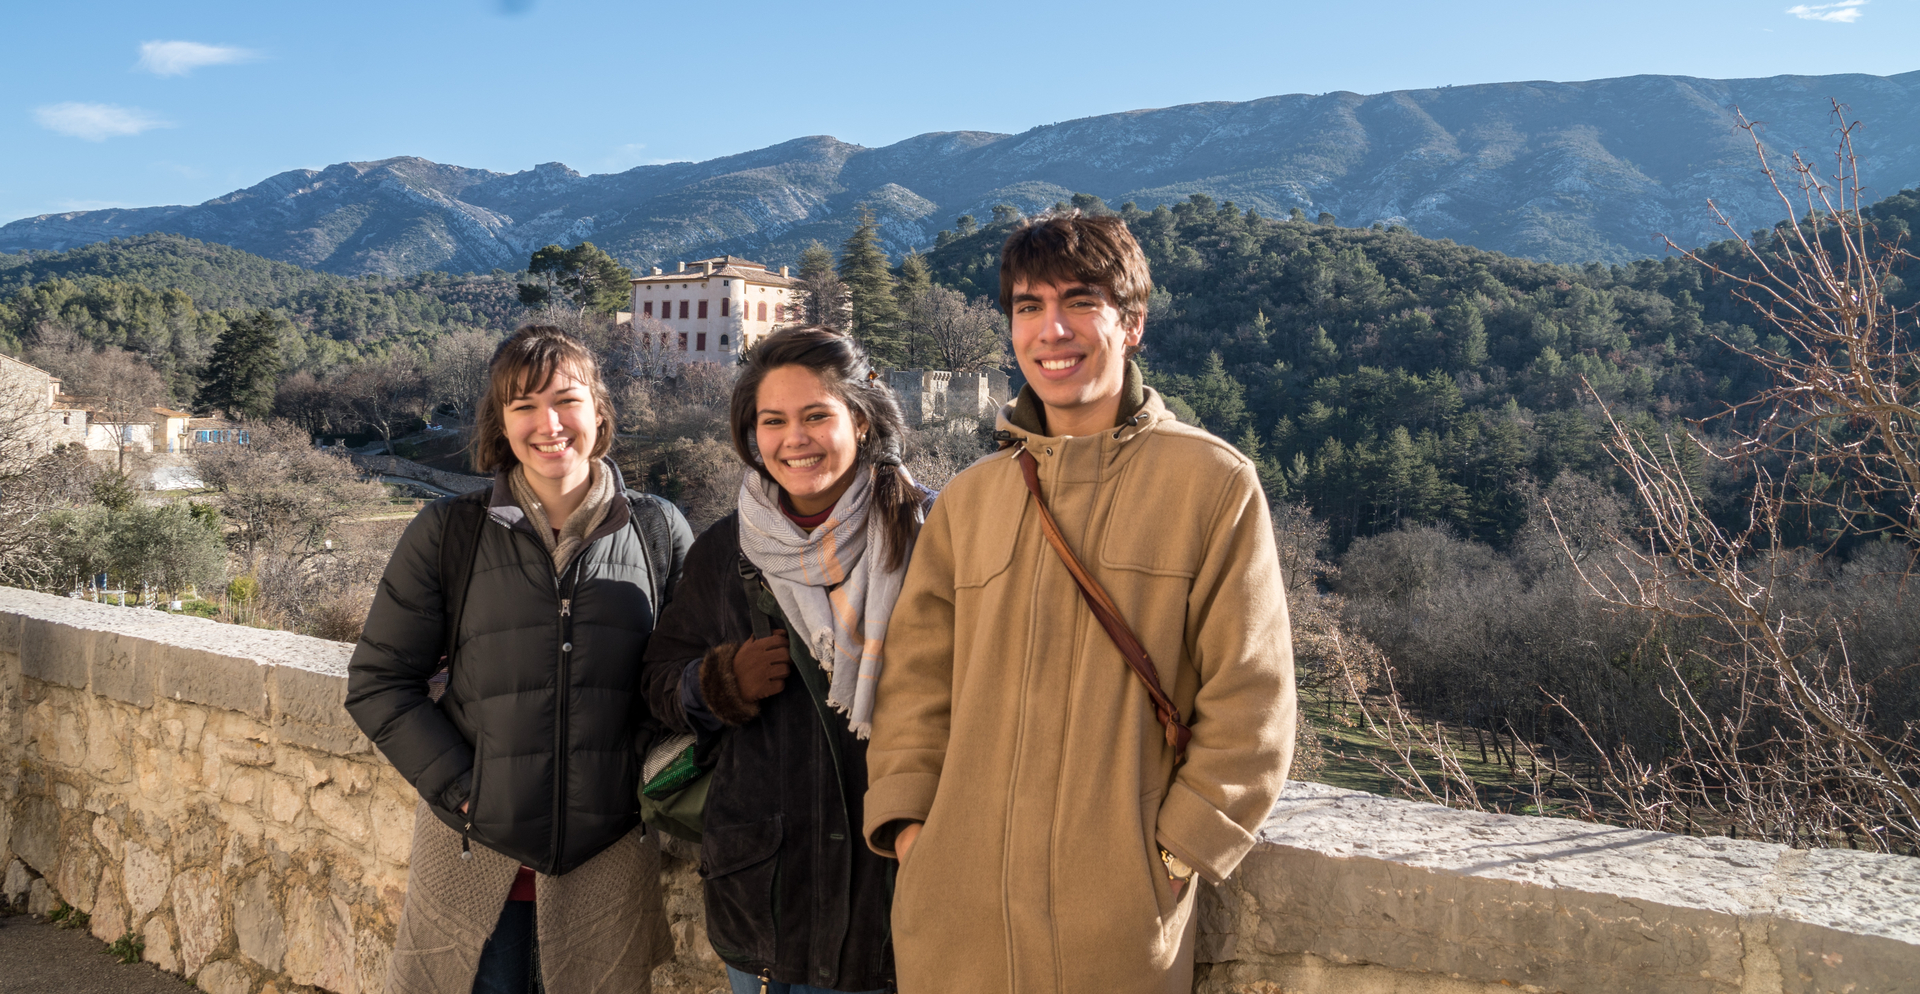 Students Clara Rhoades, Leah Mozzer, and Noah Leal on an excursion.